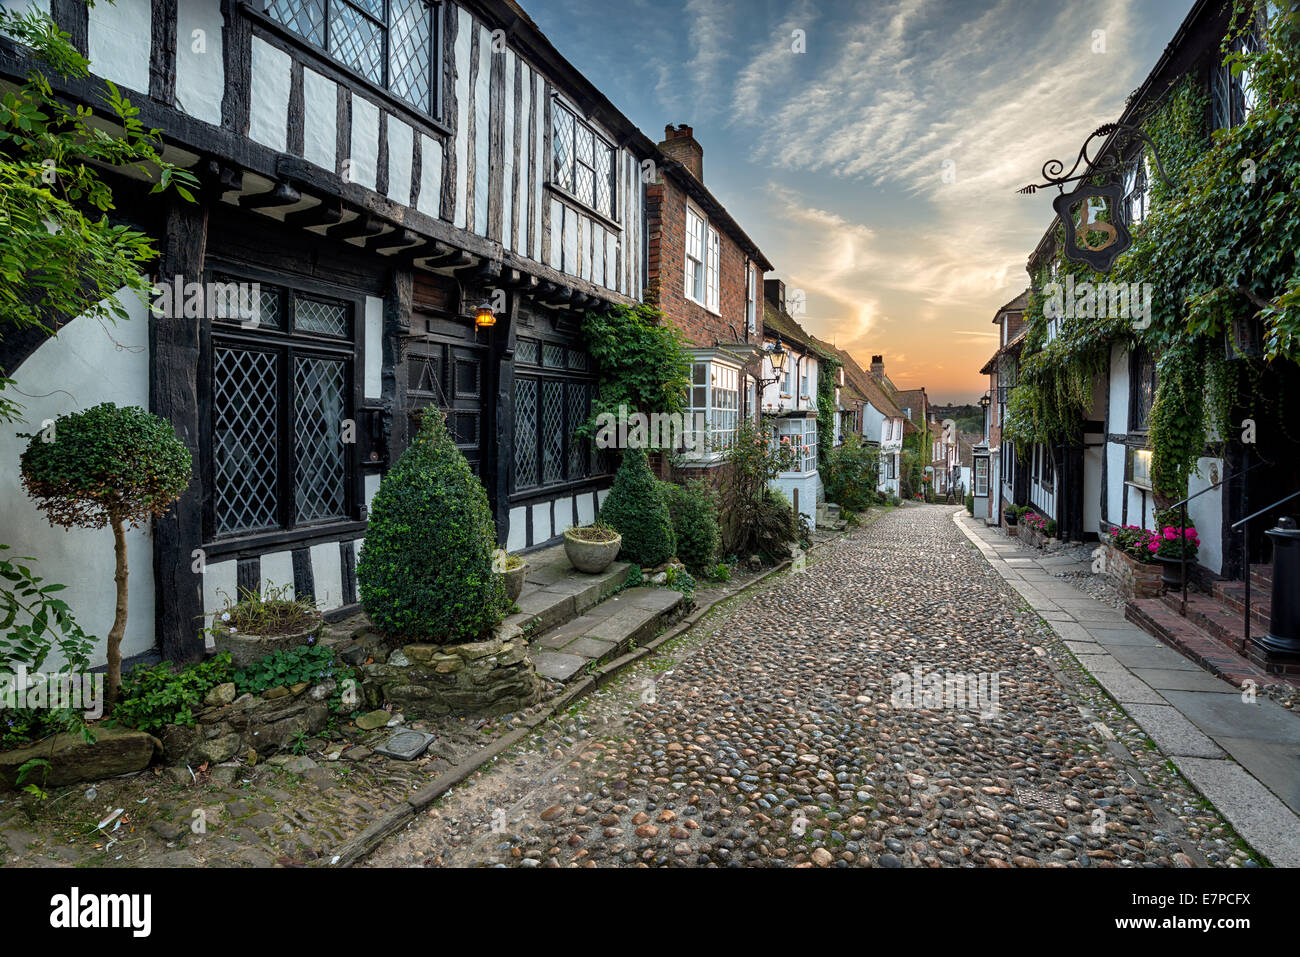 Beautiful tudor style half timbered houses lining a cobbled street in Rye, Sussex - Stock Image